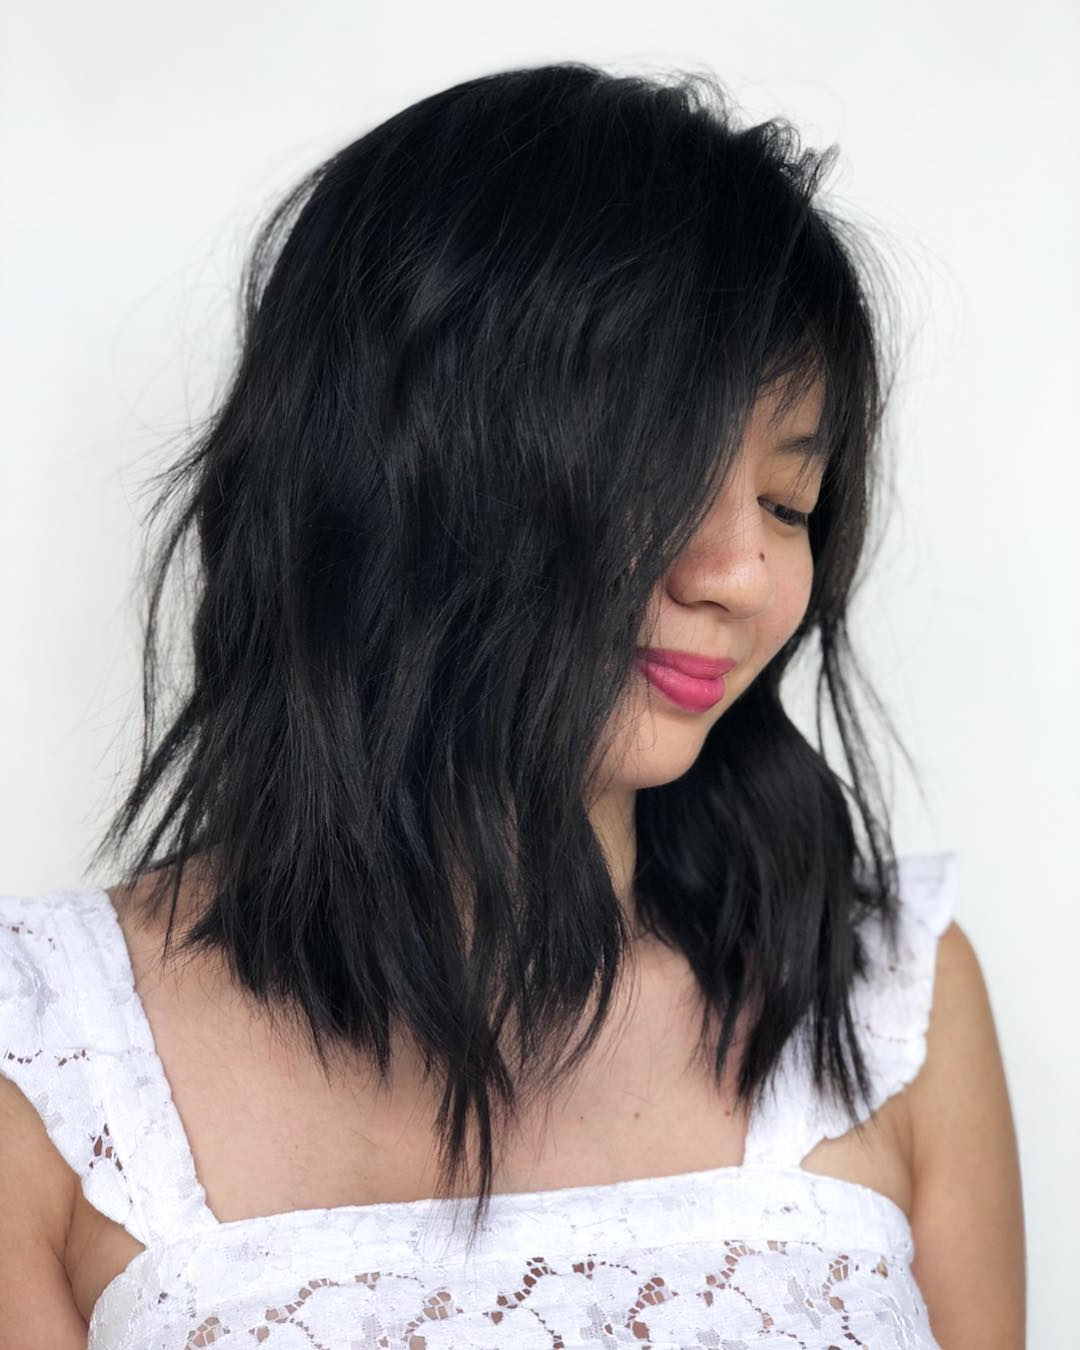 Well Known Razored Gray Bob Hairstyles With Bangs For 40 Medium Length Hairstyles For Thick Hair ⋆ Palau Oceans (View 19 of 20)